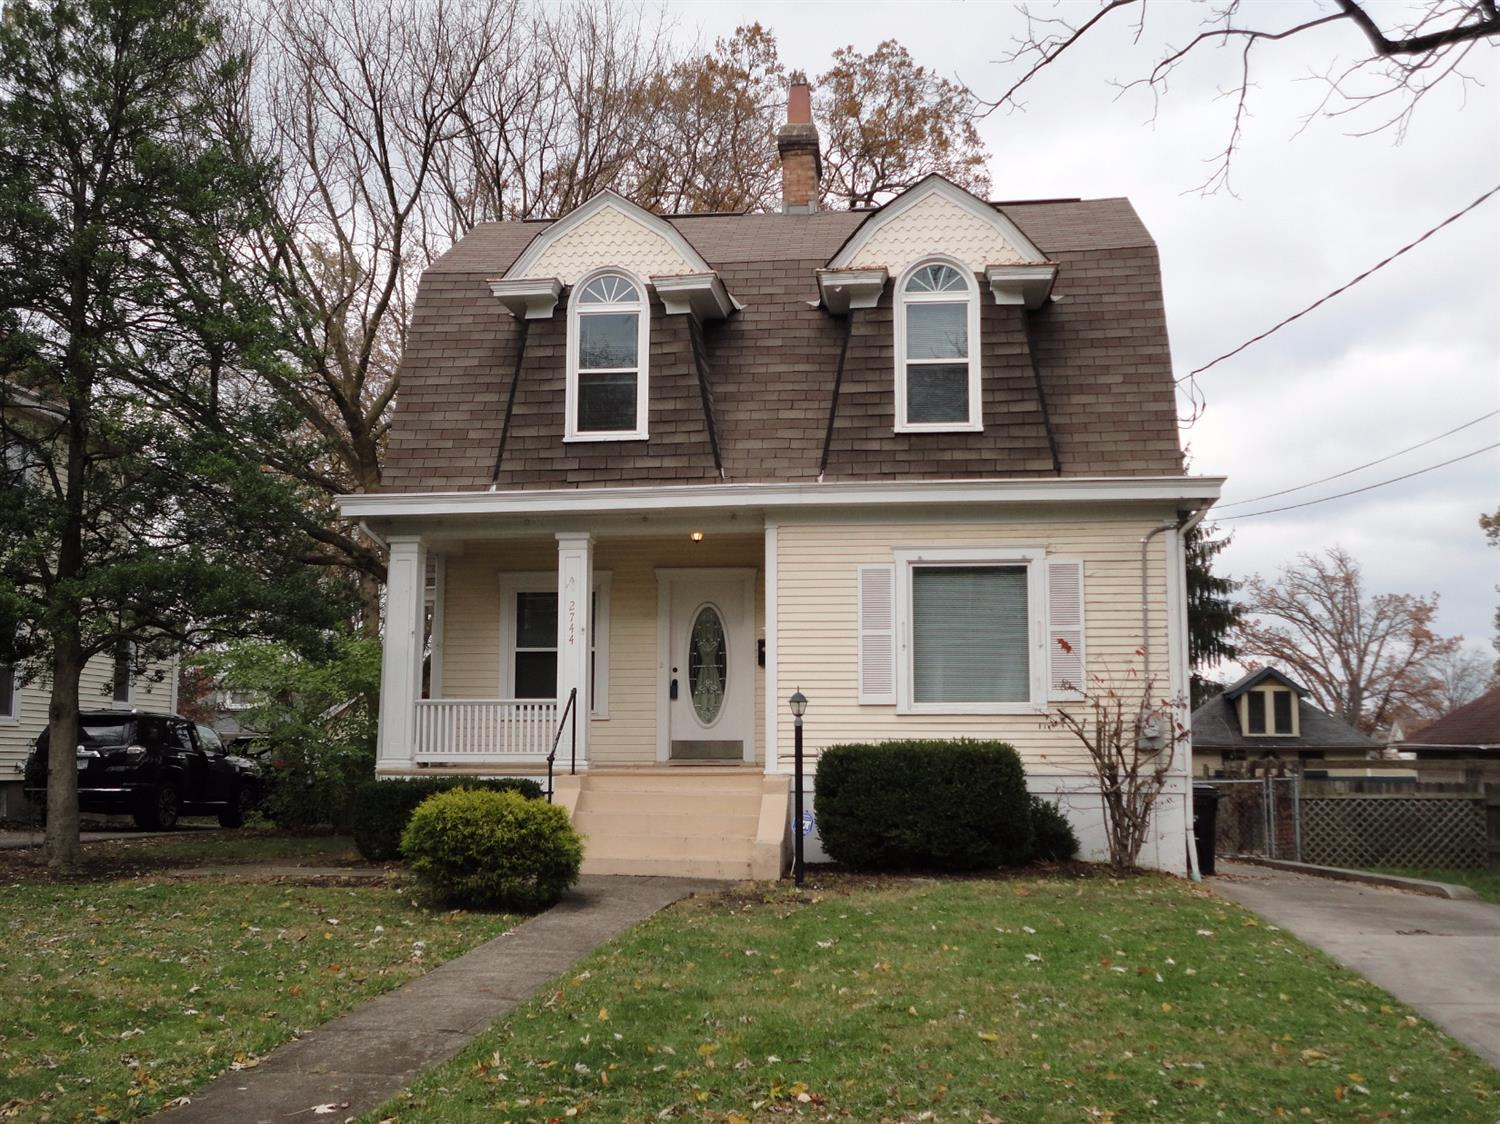 Charming home just a short walk to Rookwood shopping and restaurants! No outlet street. 5-min access to I-71. Rare 2-car garage! Remodeled Bathroom and Kitchen! Furn/AC 2014, replacement windows, wood floors, lots of natural light and covered front porch! What a location!